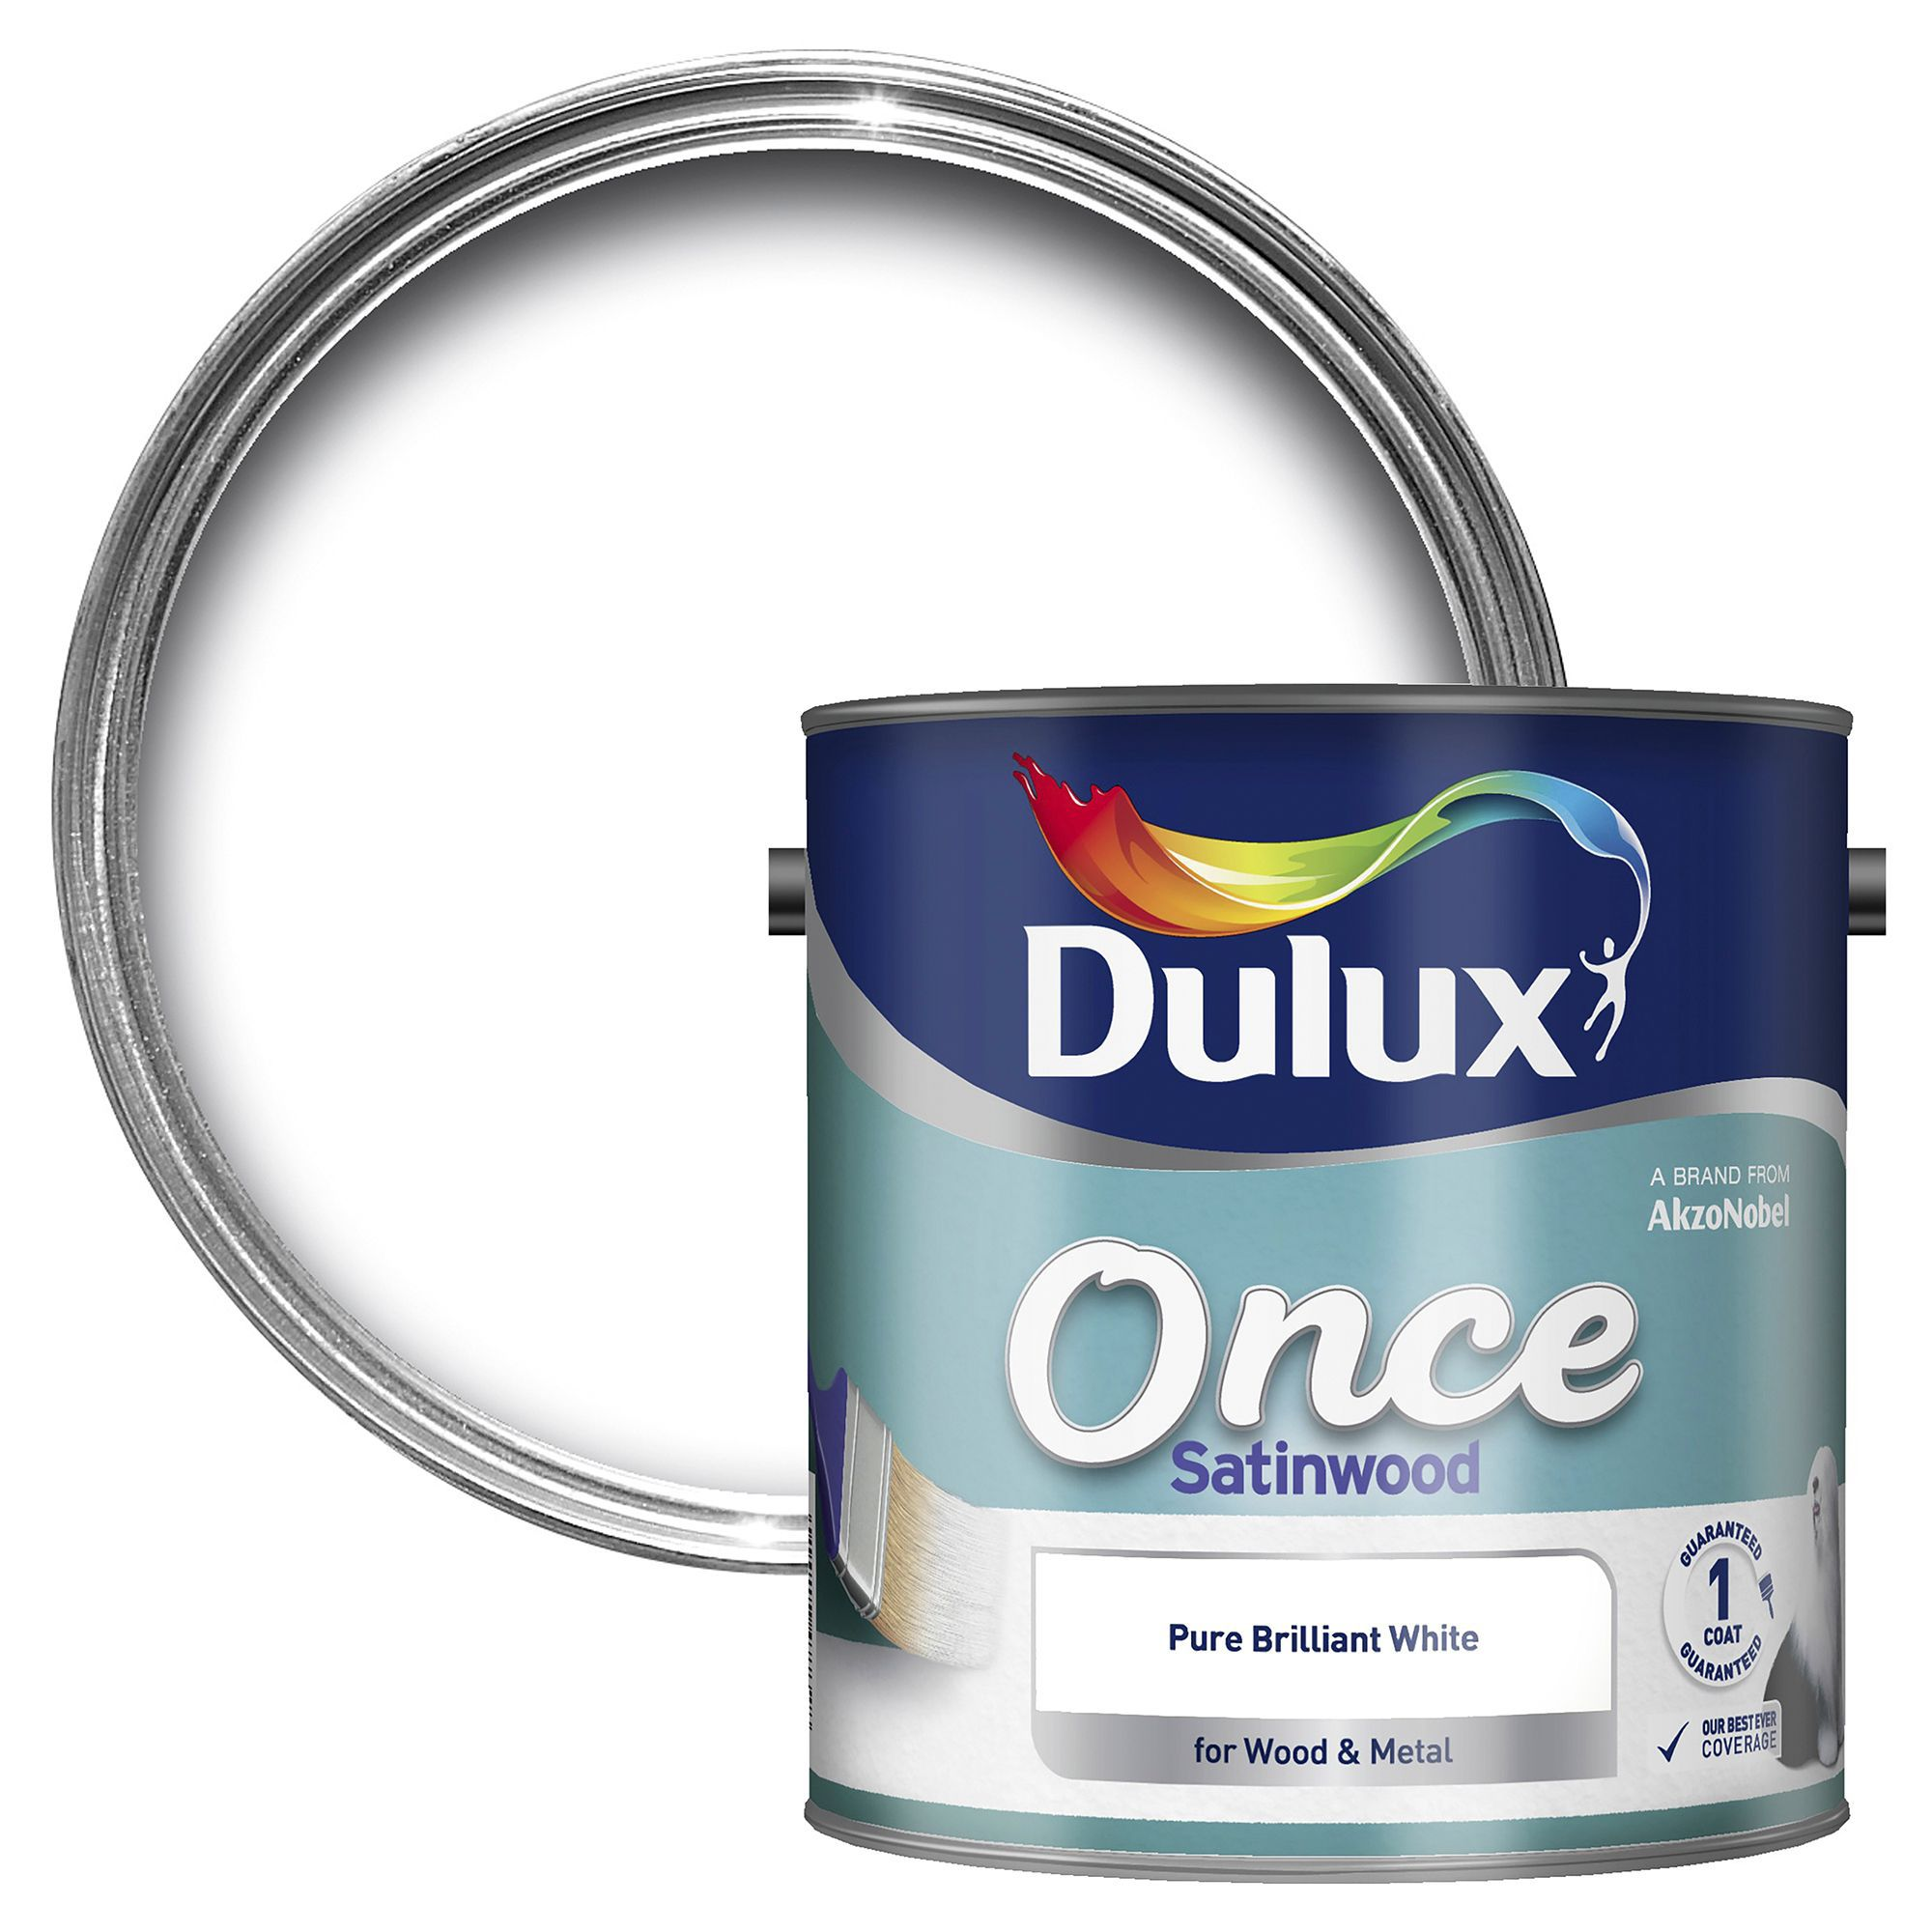 Dulux Interior Pure Brilliant White Satinwood Wood & Metal Paint 2500ml